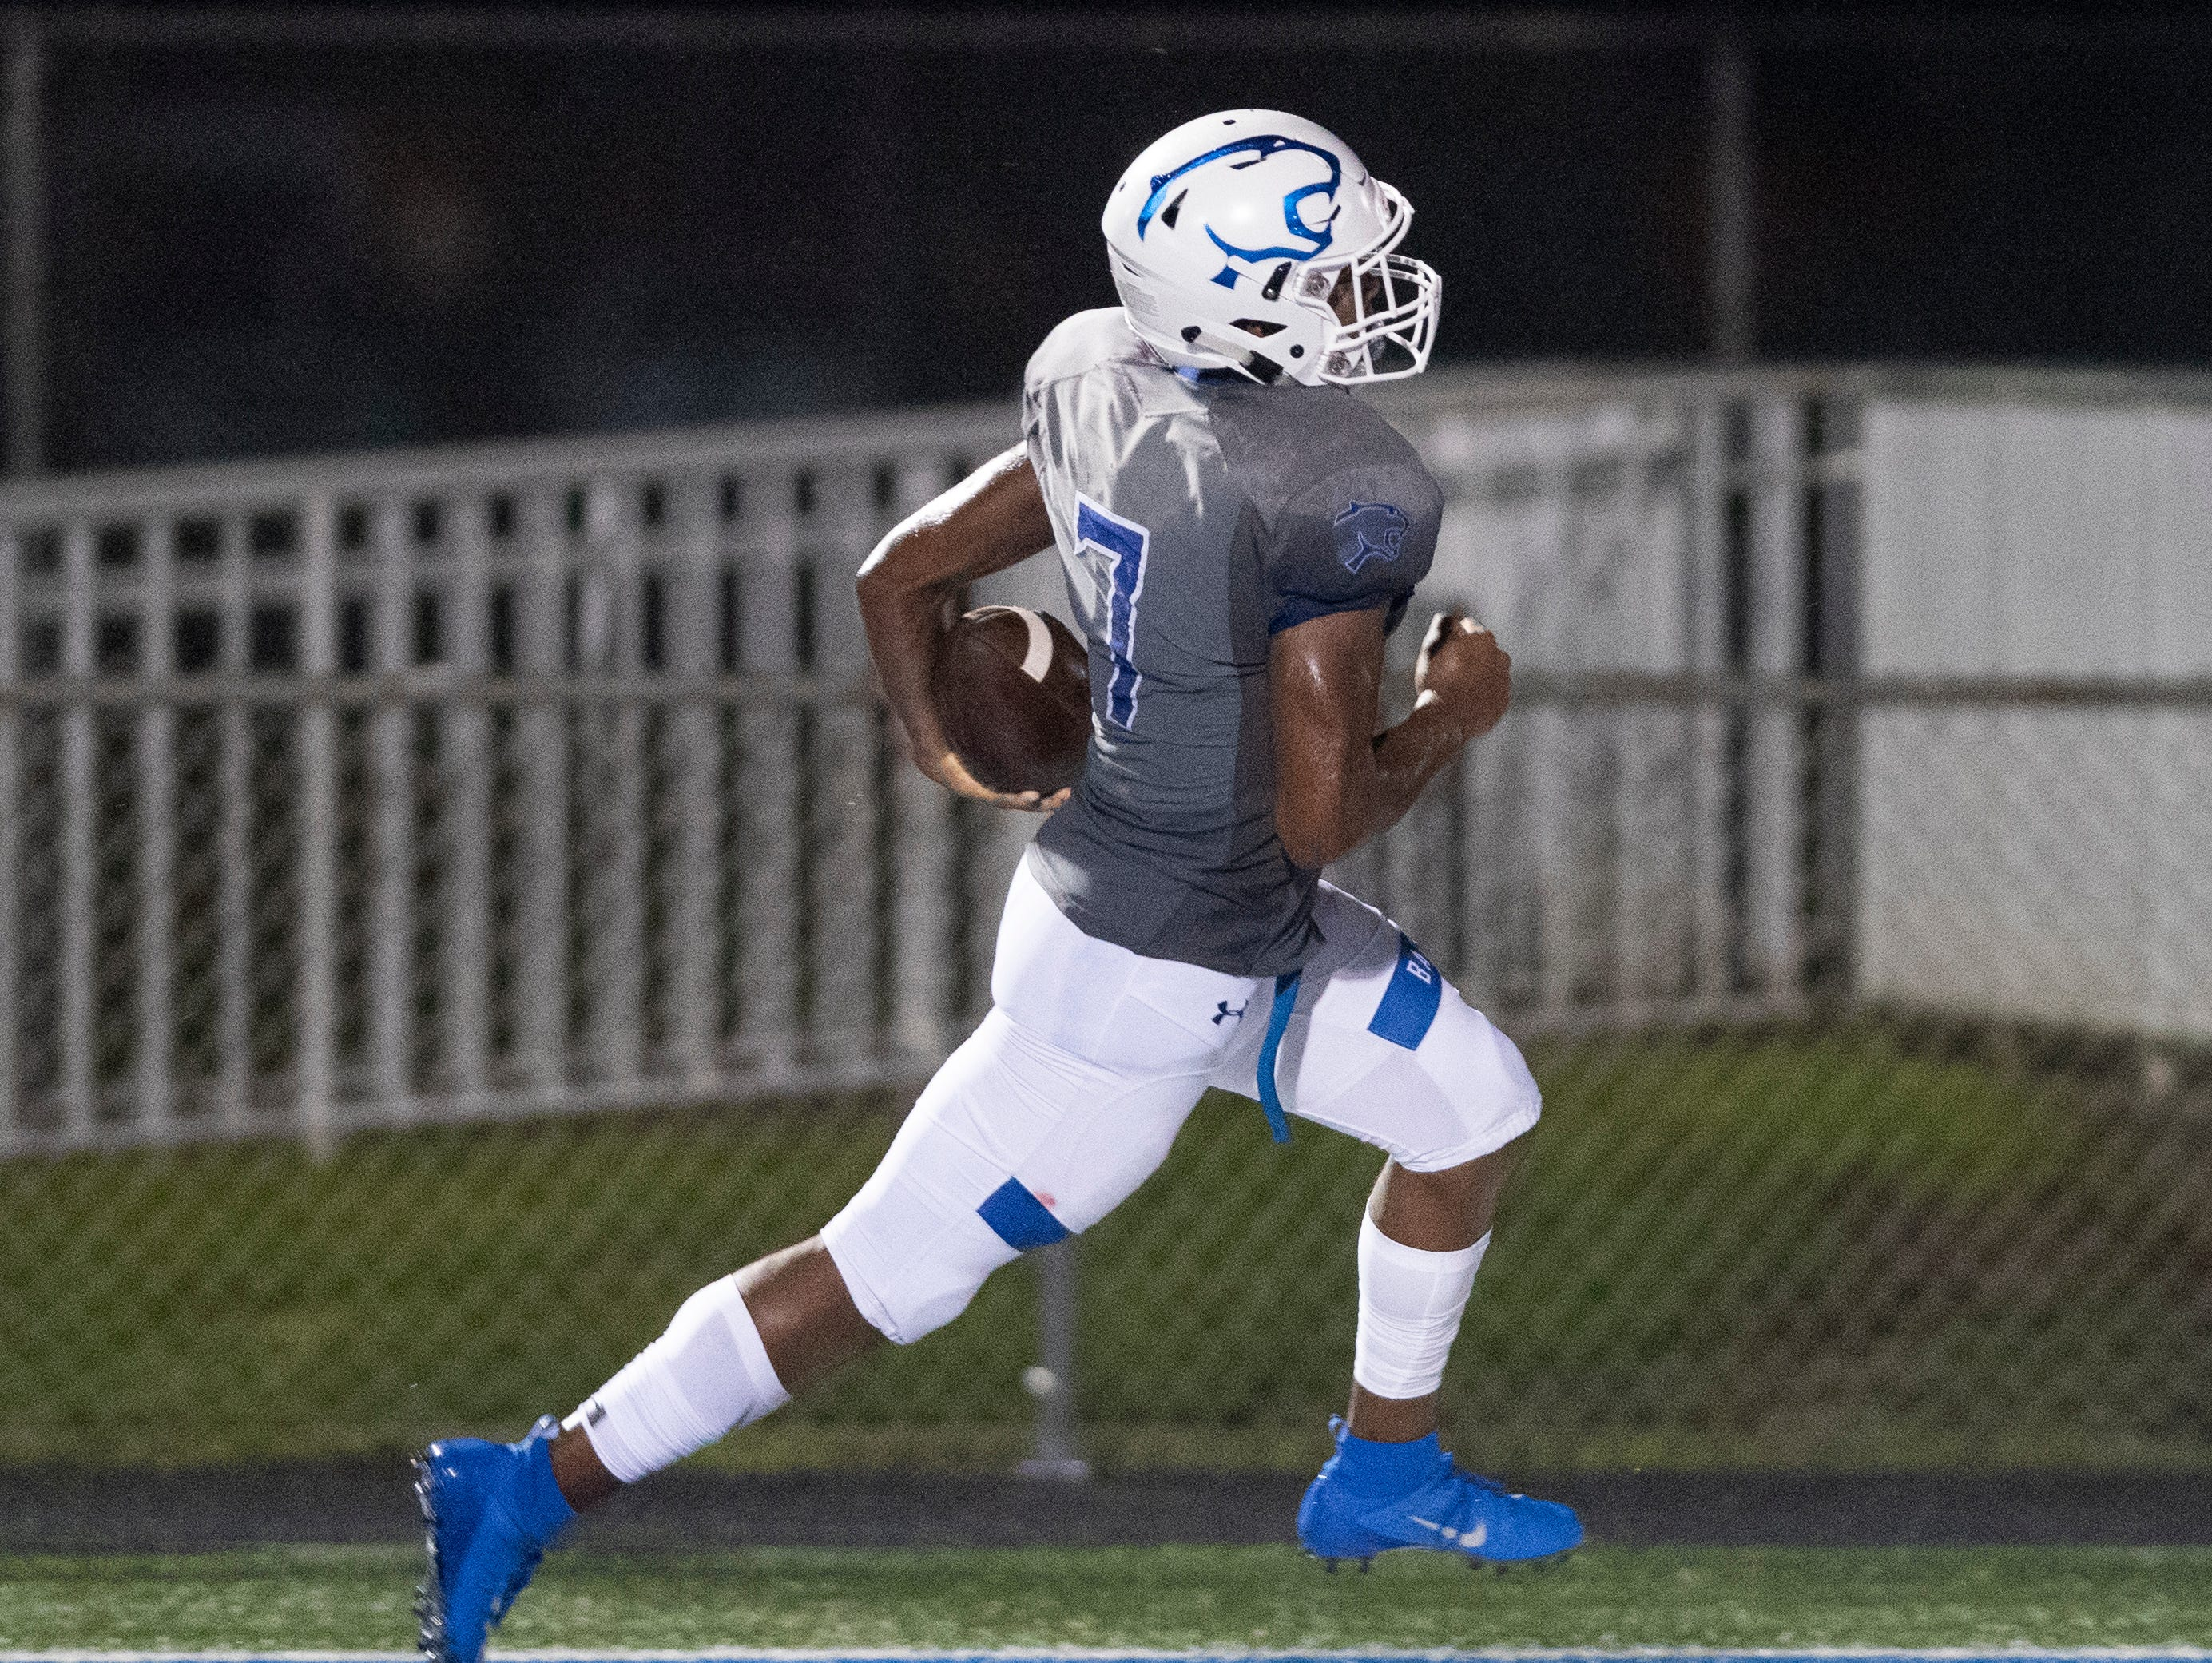 Jayden Rolle of Barron Collier runs into the end zone for a touchdown during the game against Mariner at Barron Collier High Friday night, September 21, 2018.